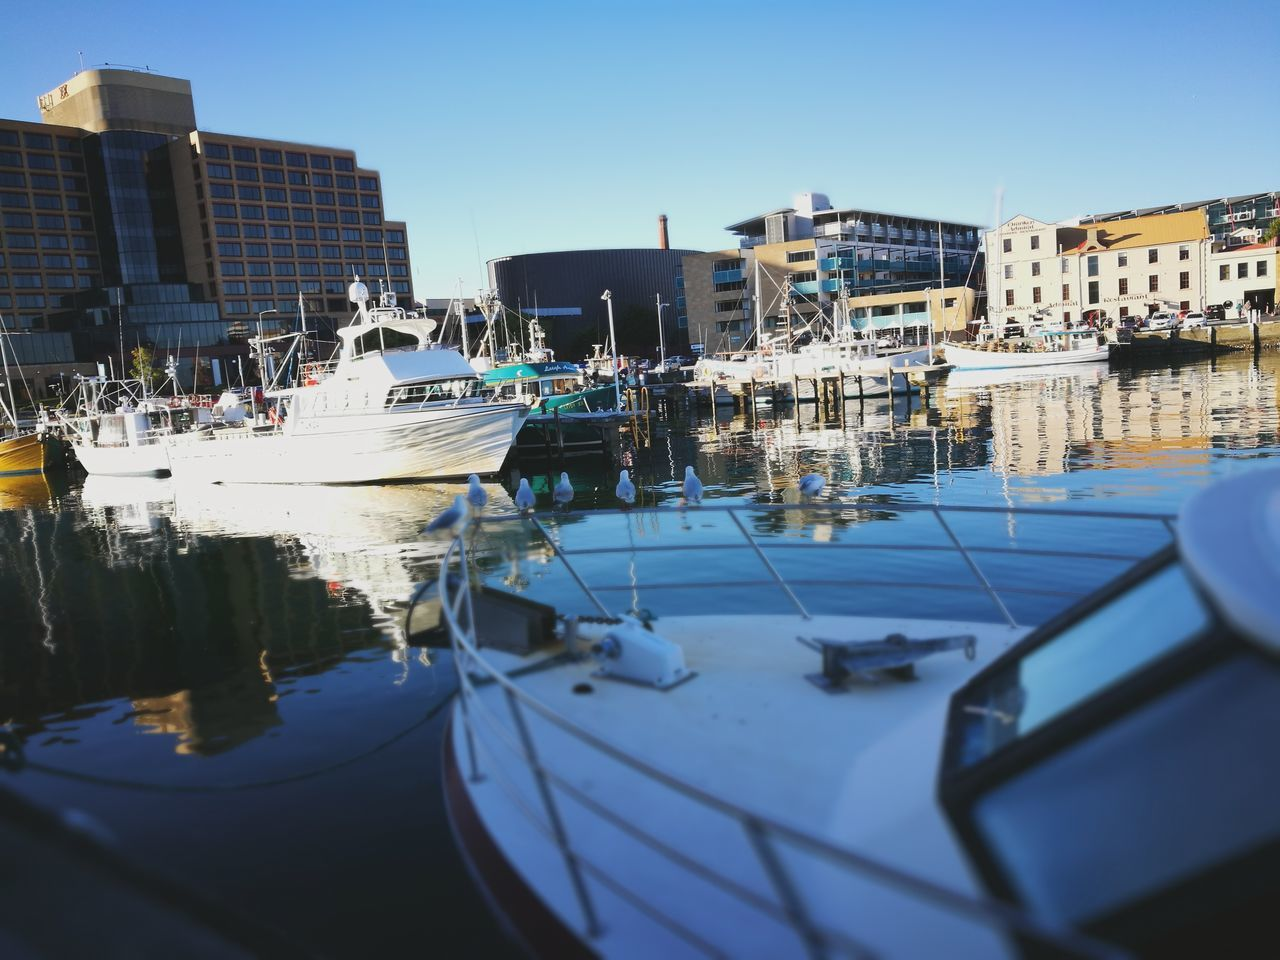 An evening stroll Nautical Vessel Reflection Moored Water Blue Harbor Clear Sky Yacht Sailboat Transportation No People Mode Of Transport Marina Day Tranquility Outdoors Recreational Boat Sailing Sky Yachting EyeEmNewHere Tranquility Sea Boats And Water Boats